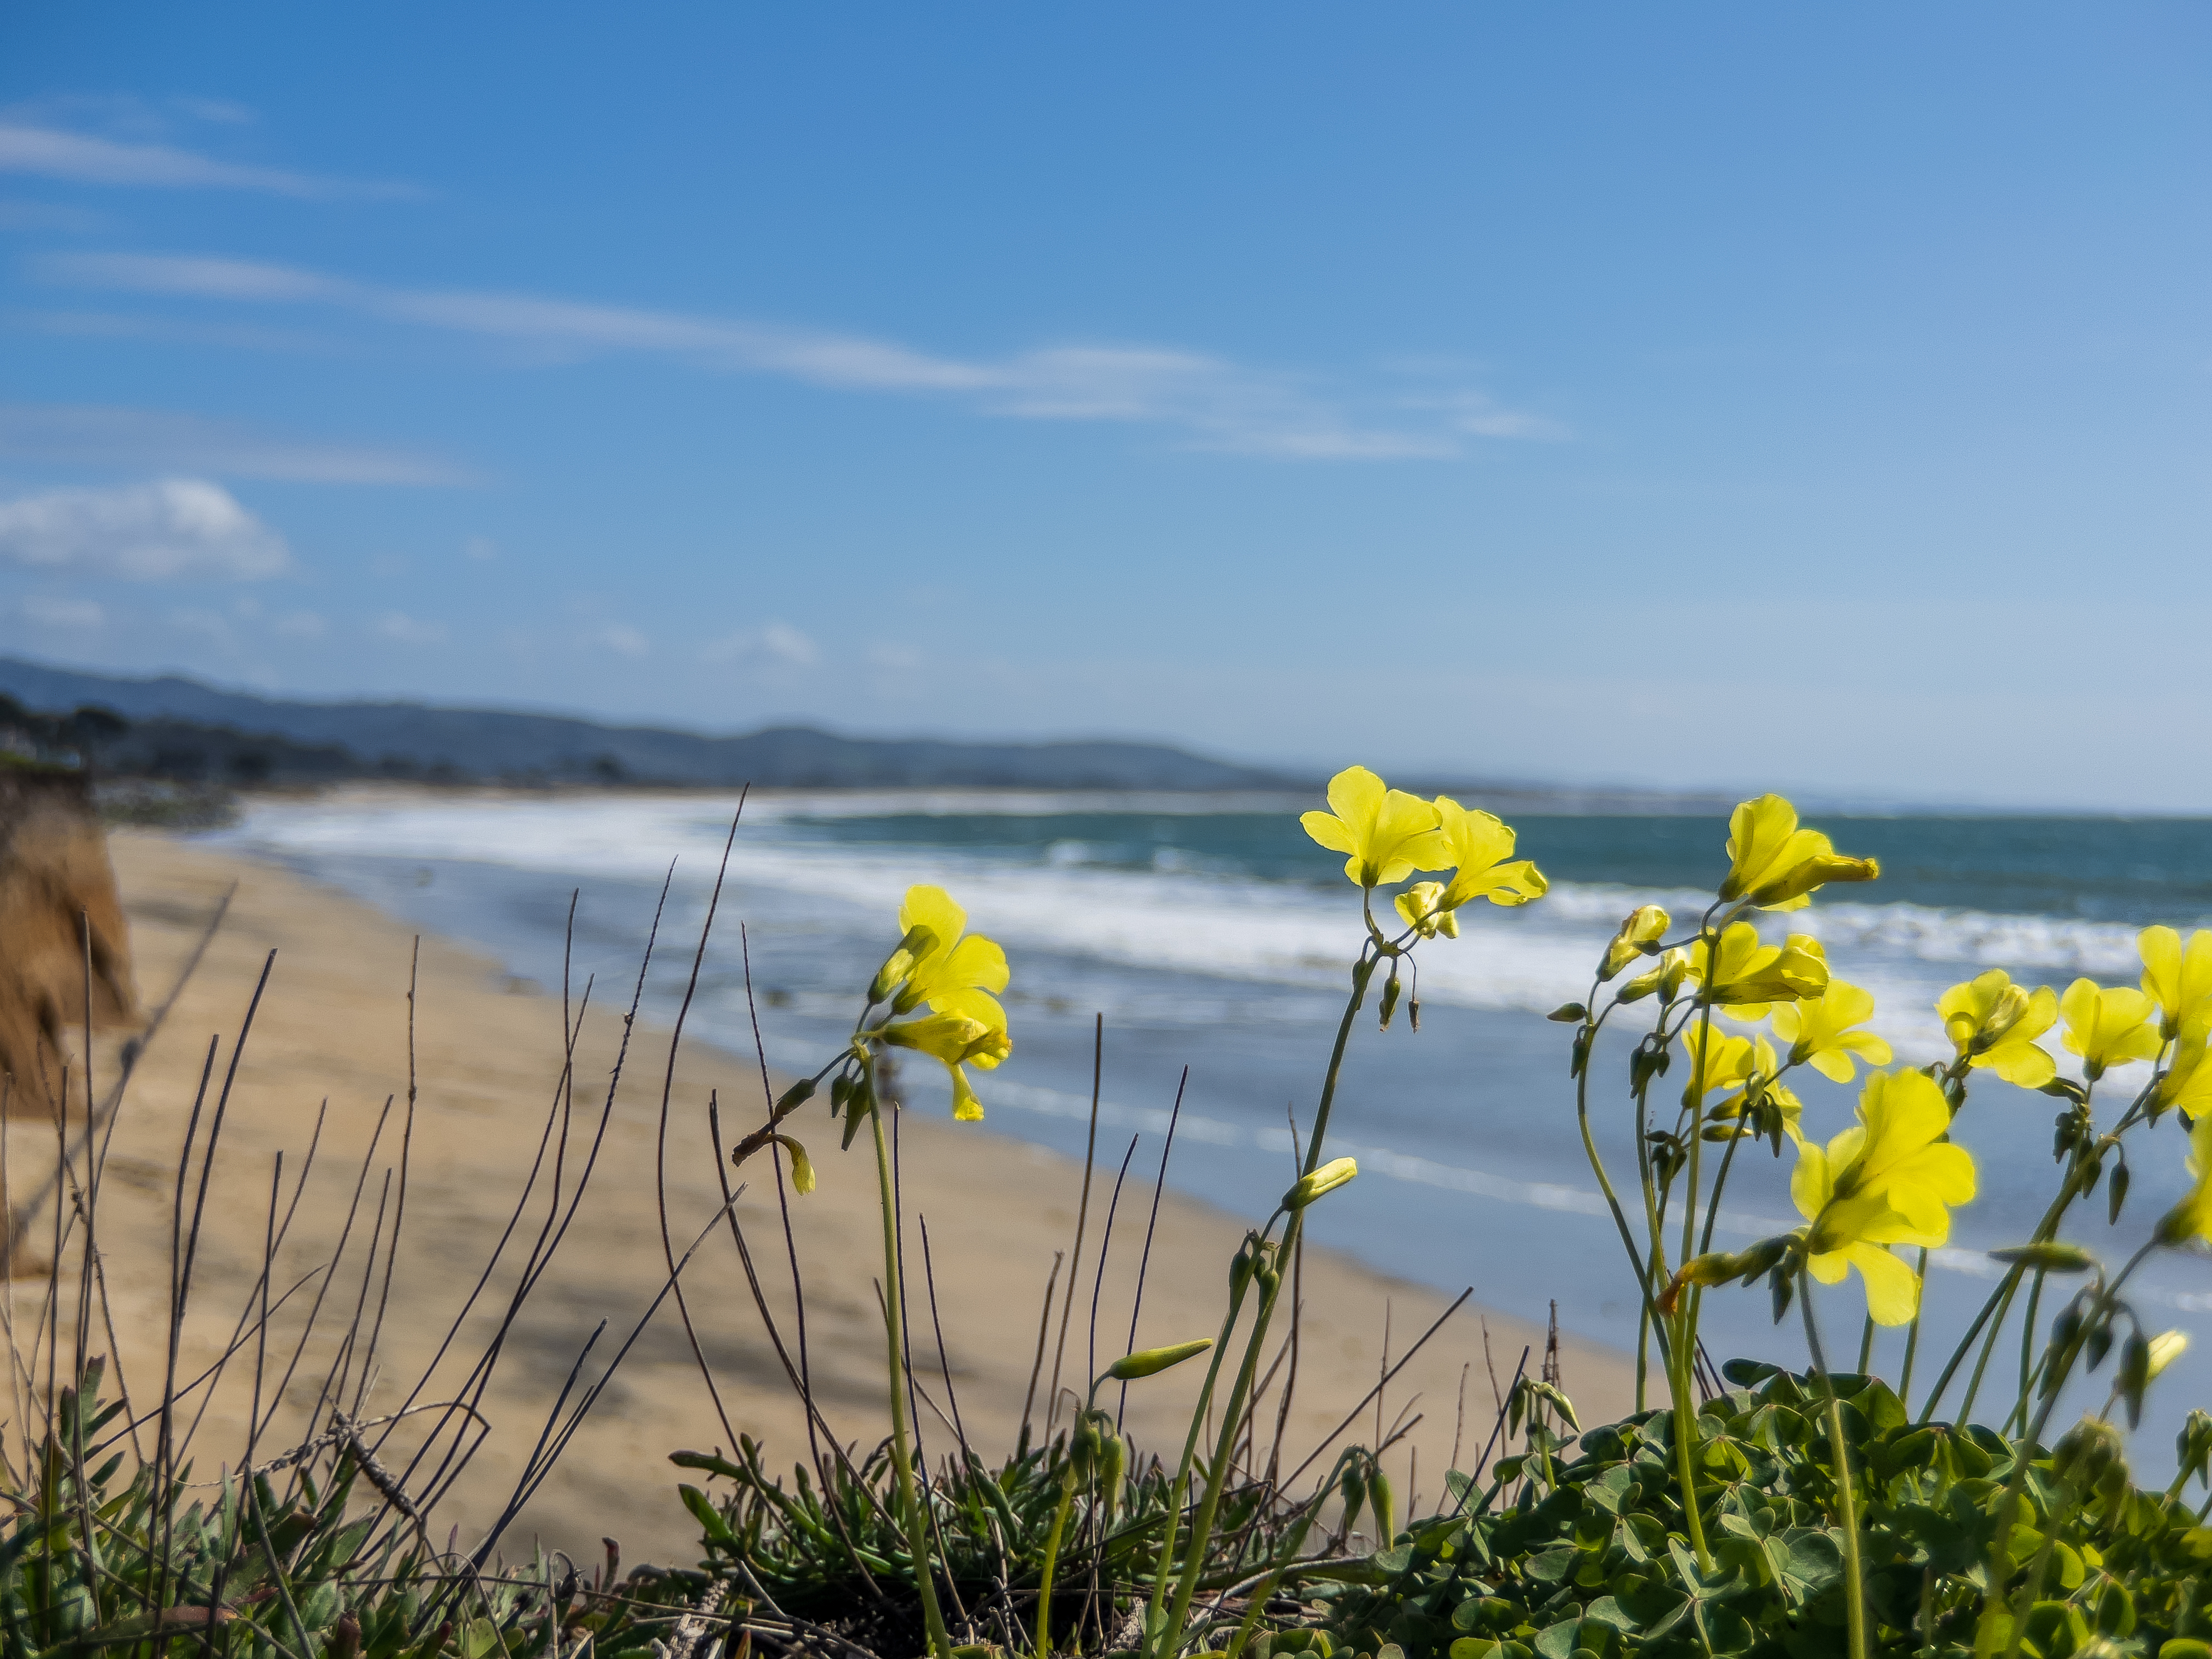 Yellow Flower above the Beach in Halfmoon Bay. Looking south along the Pacific Coastline